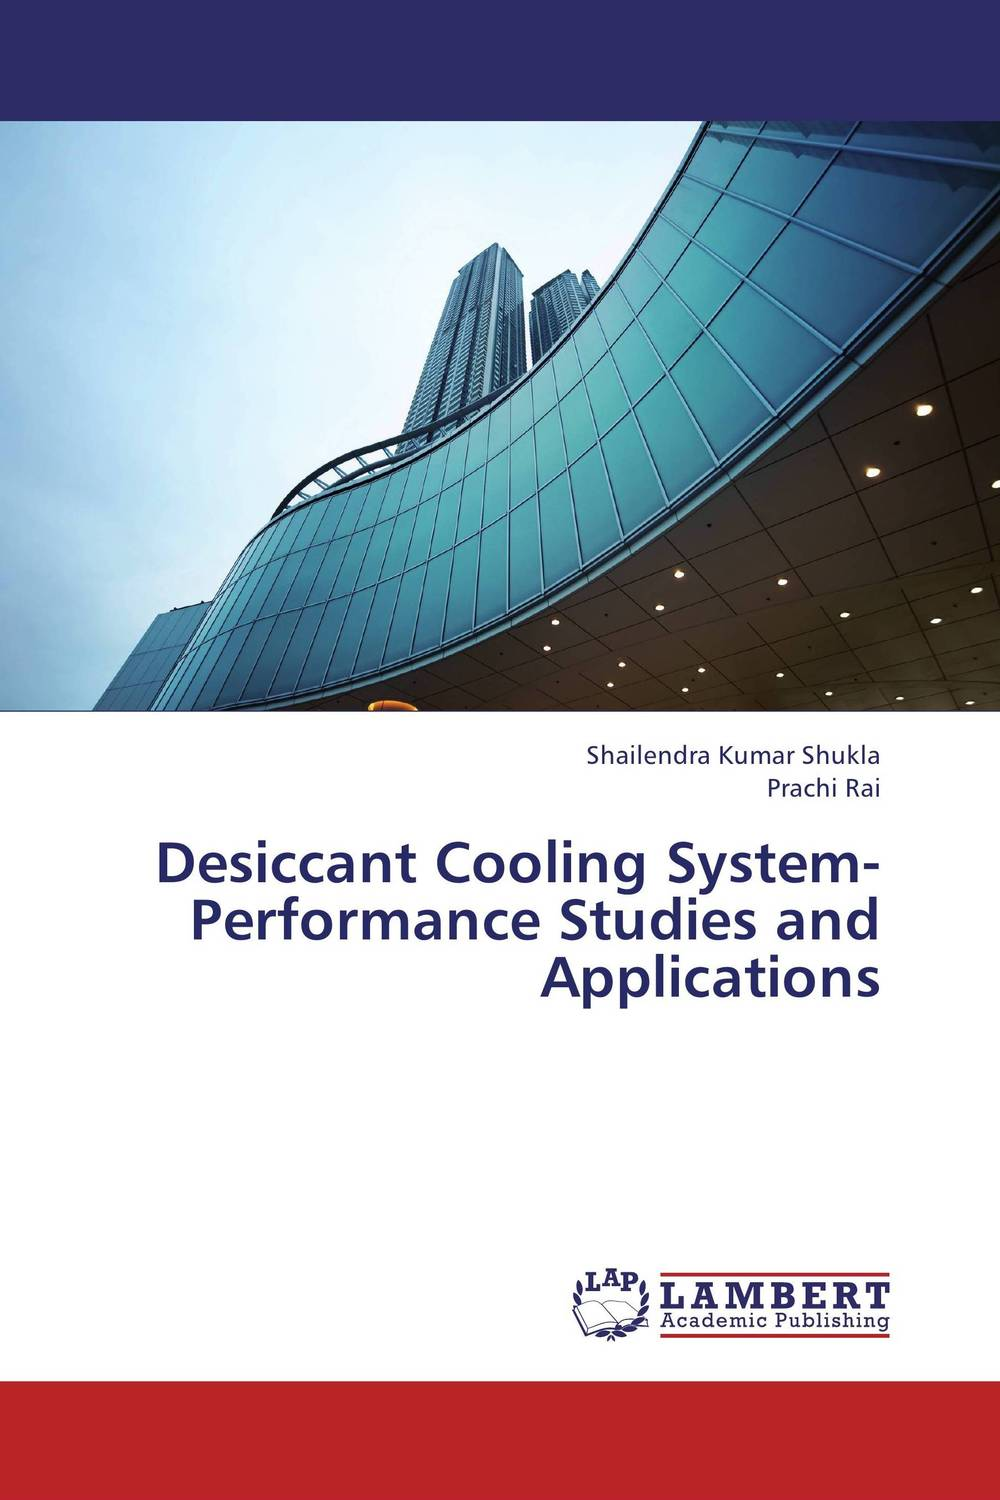 Desiccant Cooling System-Performance Studies and Applications p b eregha energy consumption oil price and macroeconomic performance in energy dependent african countries